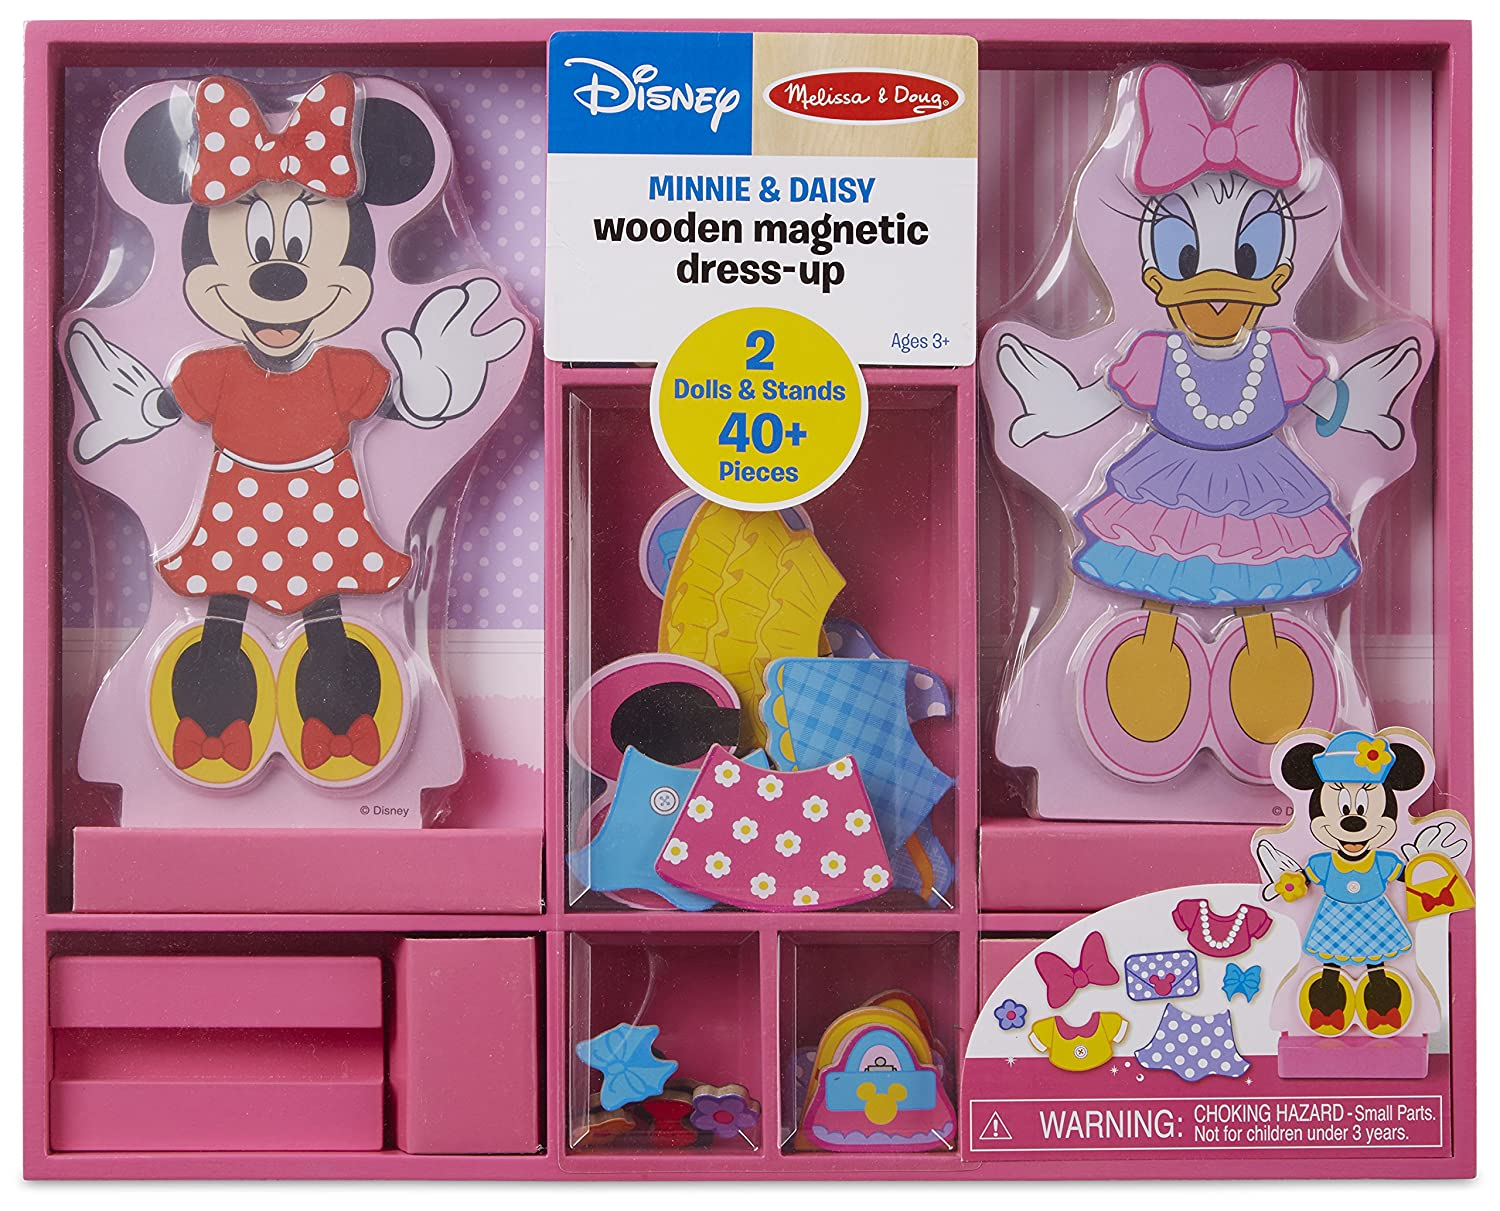 Melissa & Doug Disney Minnie Mouse and Daisy Duck Magnetic Dress-Up Wooden Doll (Pretend Play Set, Interchangeable Pieces, Display Stands, 45+ Pieces)